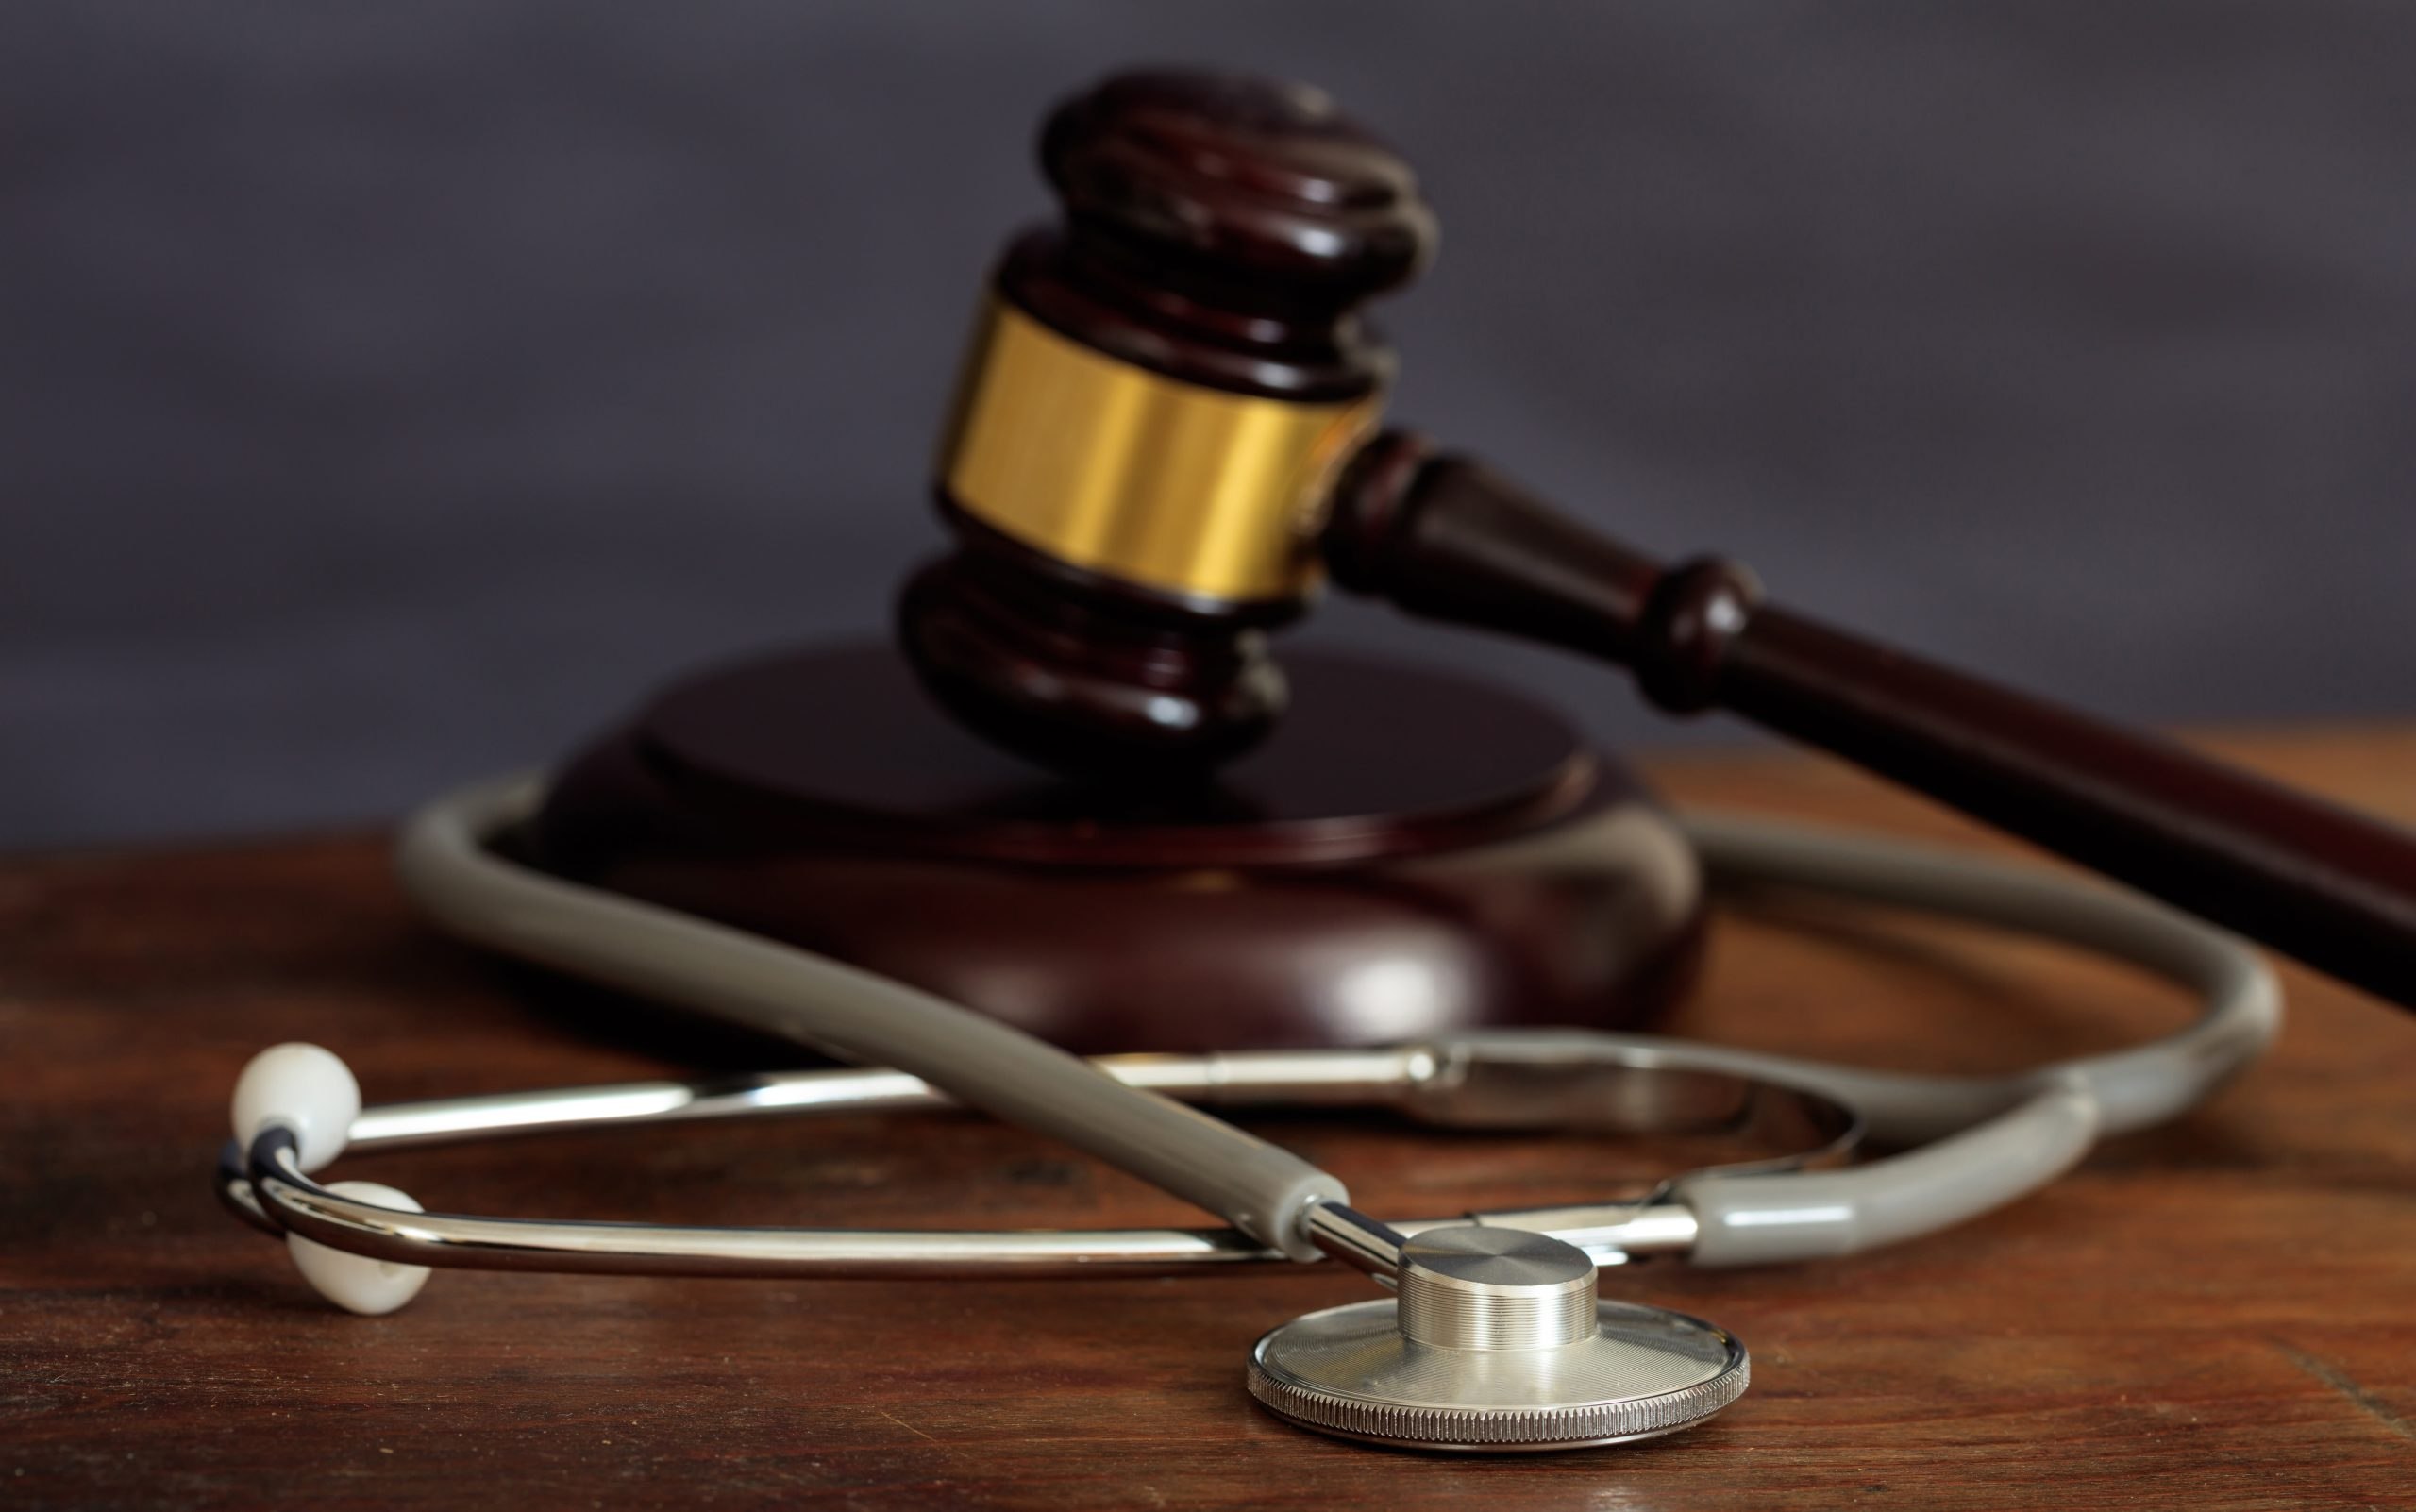 When Do I Need a Medical Malpractice Lawyer?